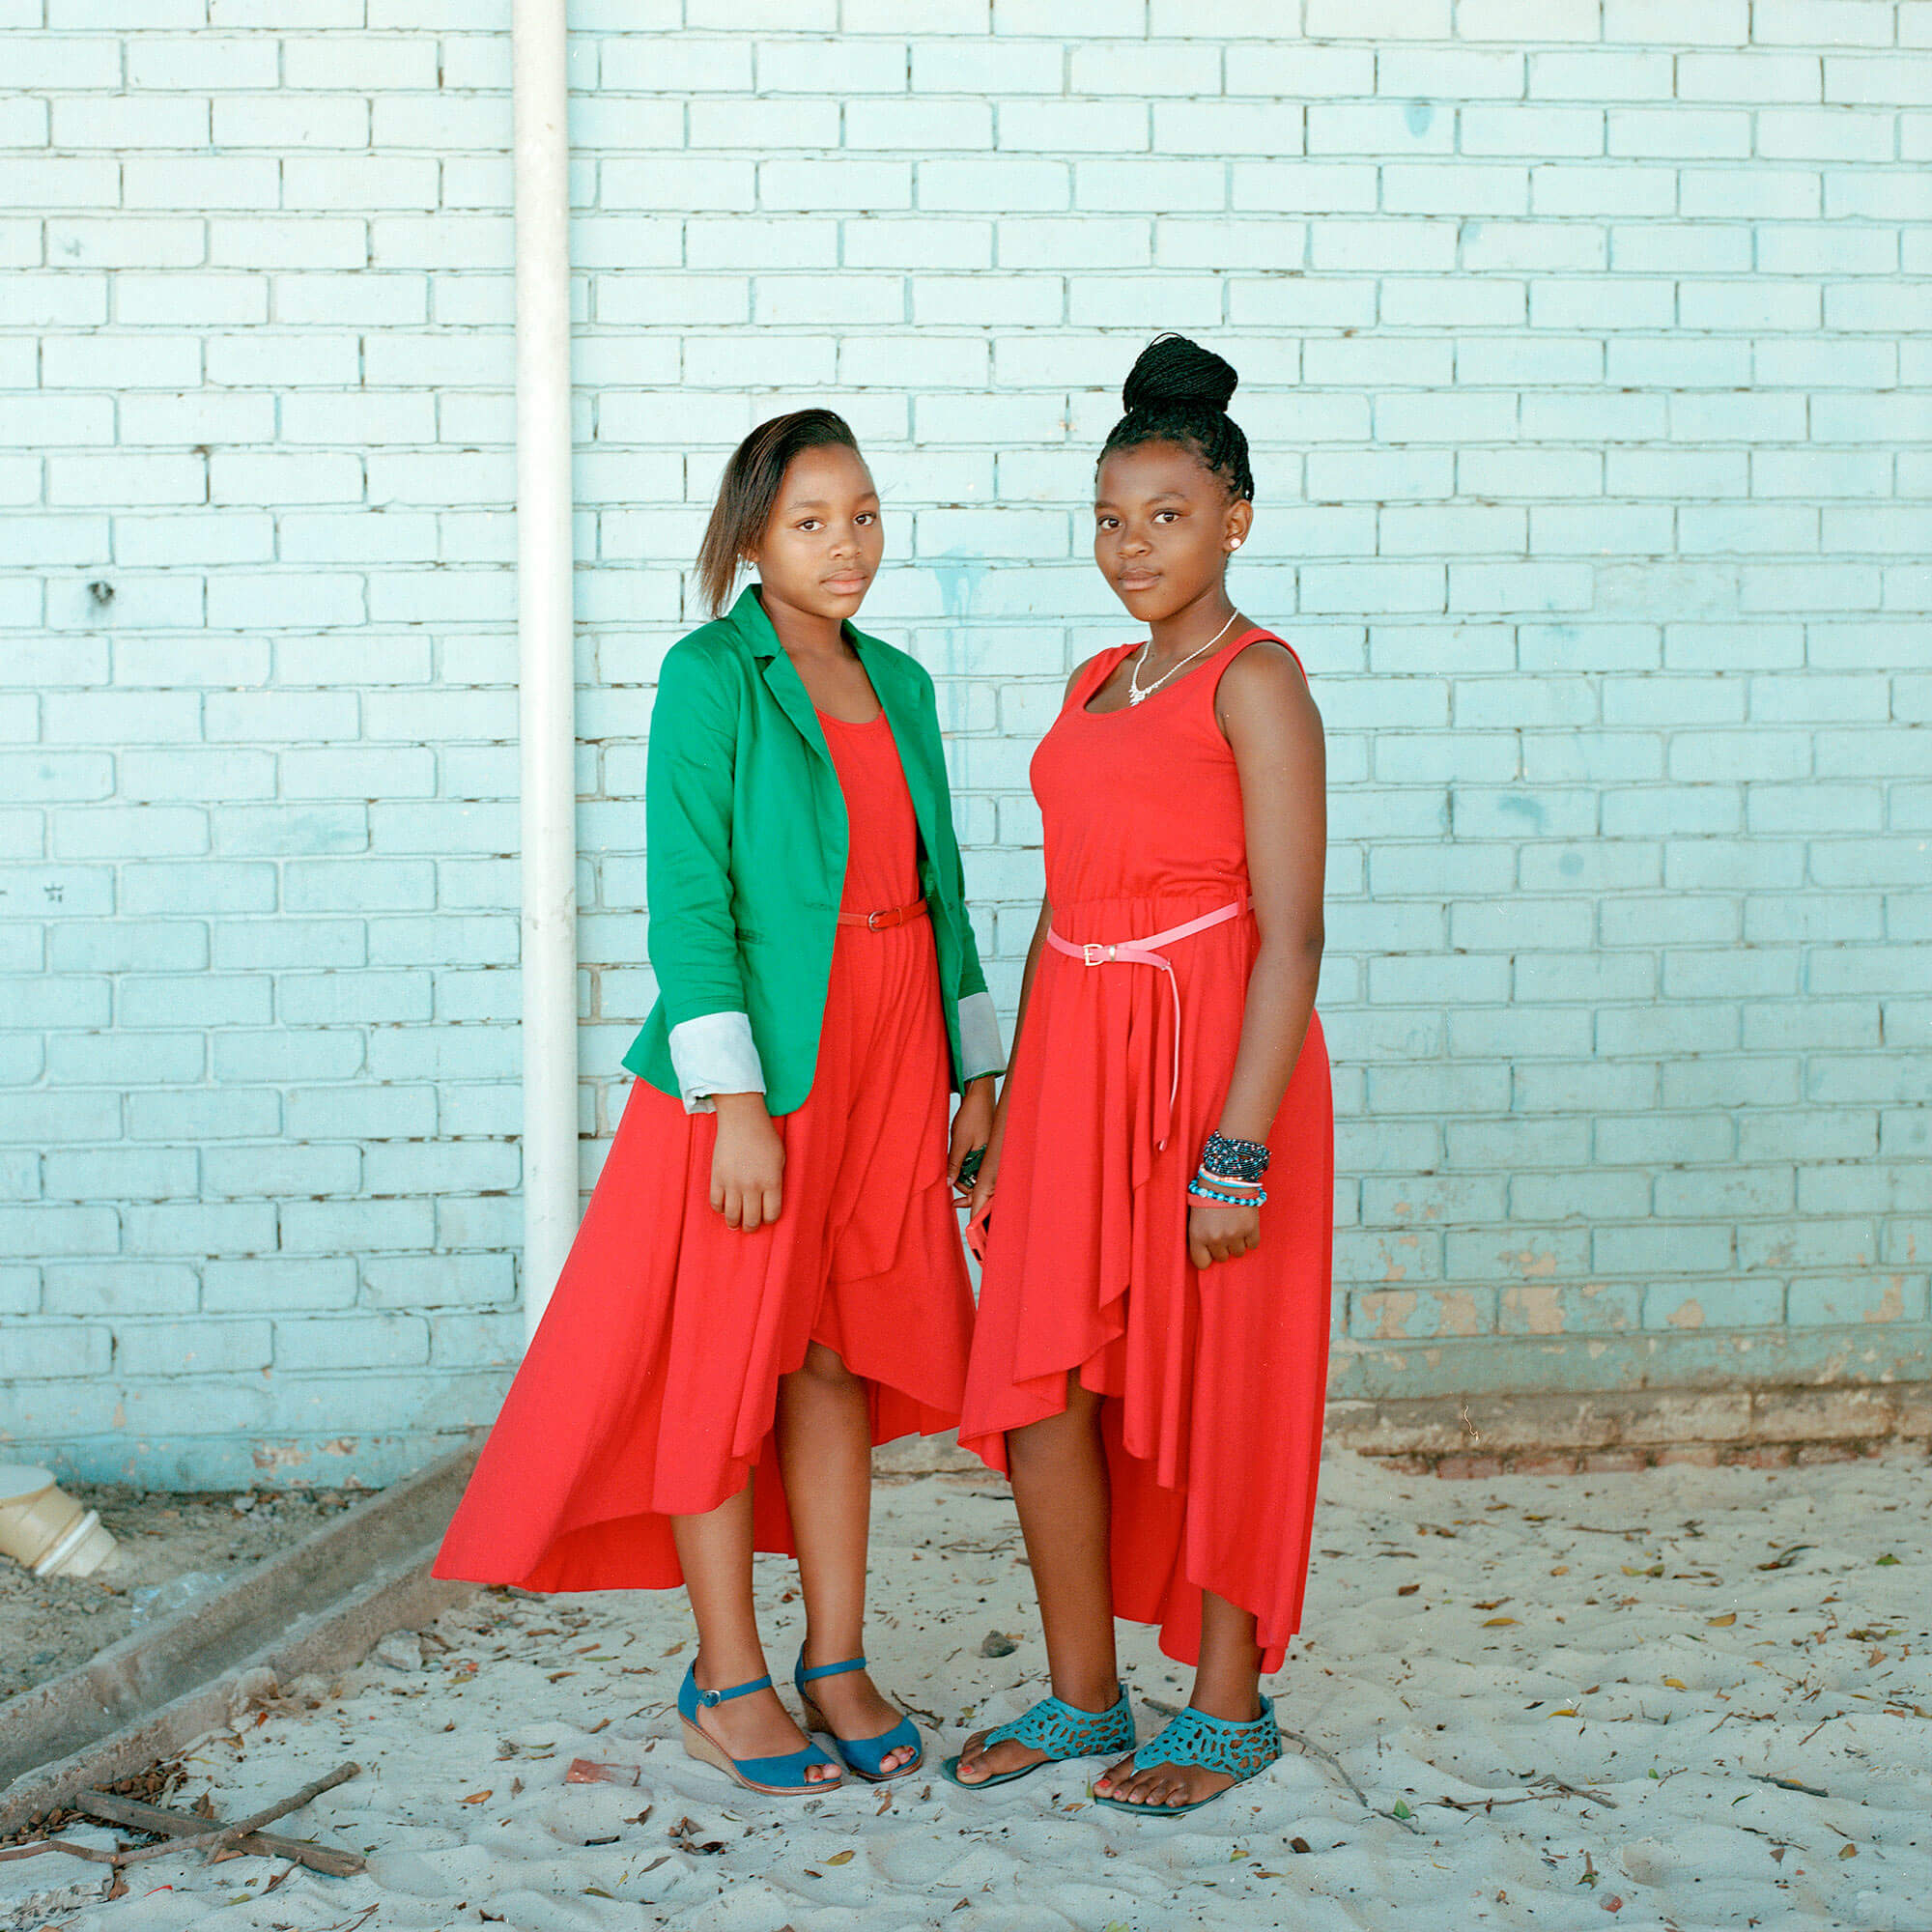 Claudio Rasano SOUTH AFRICA EVERYONE LIVE IN THE SAME PLACE LIKE BEFORE portrait of two women in red dresses